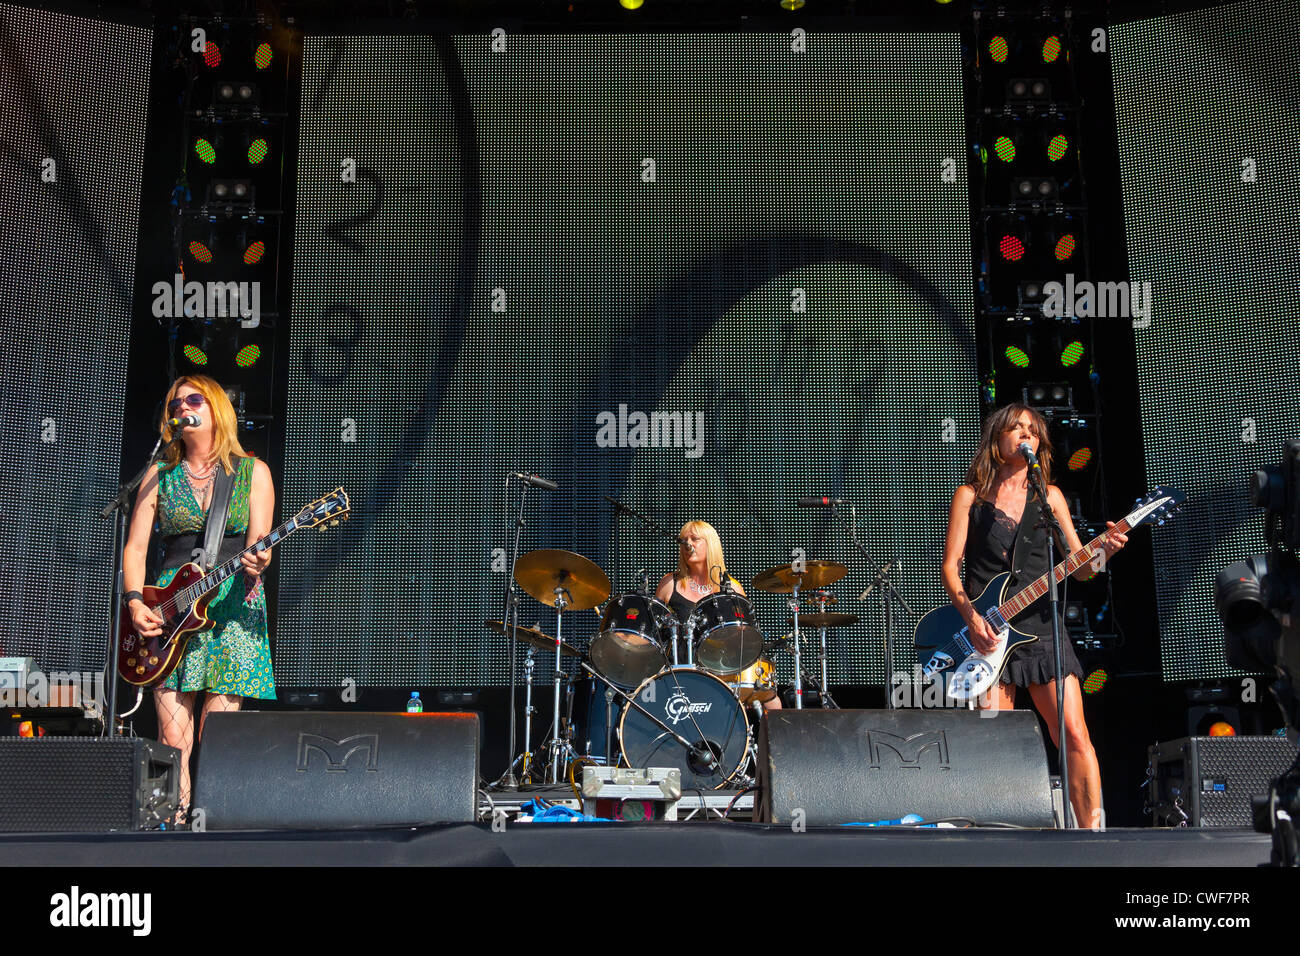 The group The Bangles performing on stage at the Rewind Festival Henley on Thames 2012. PER0244 - Stock Image